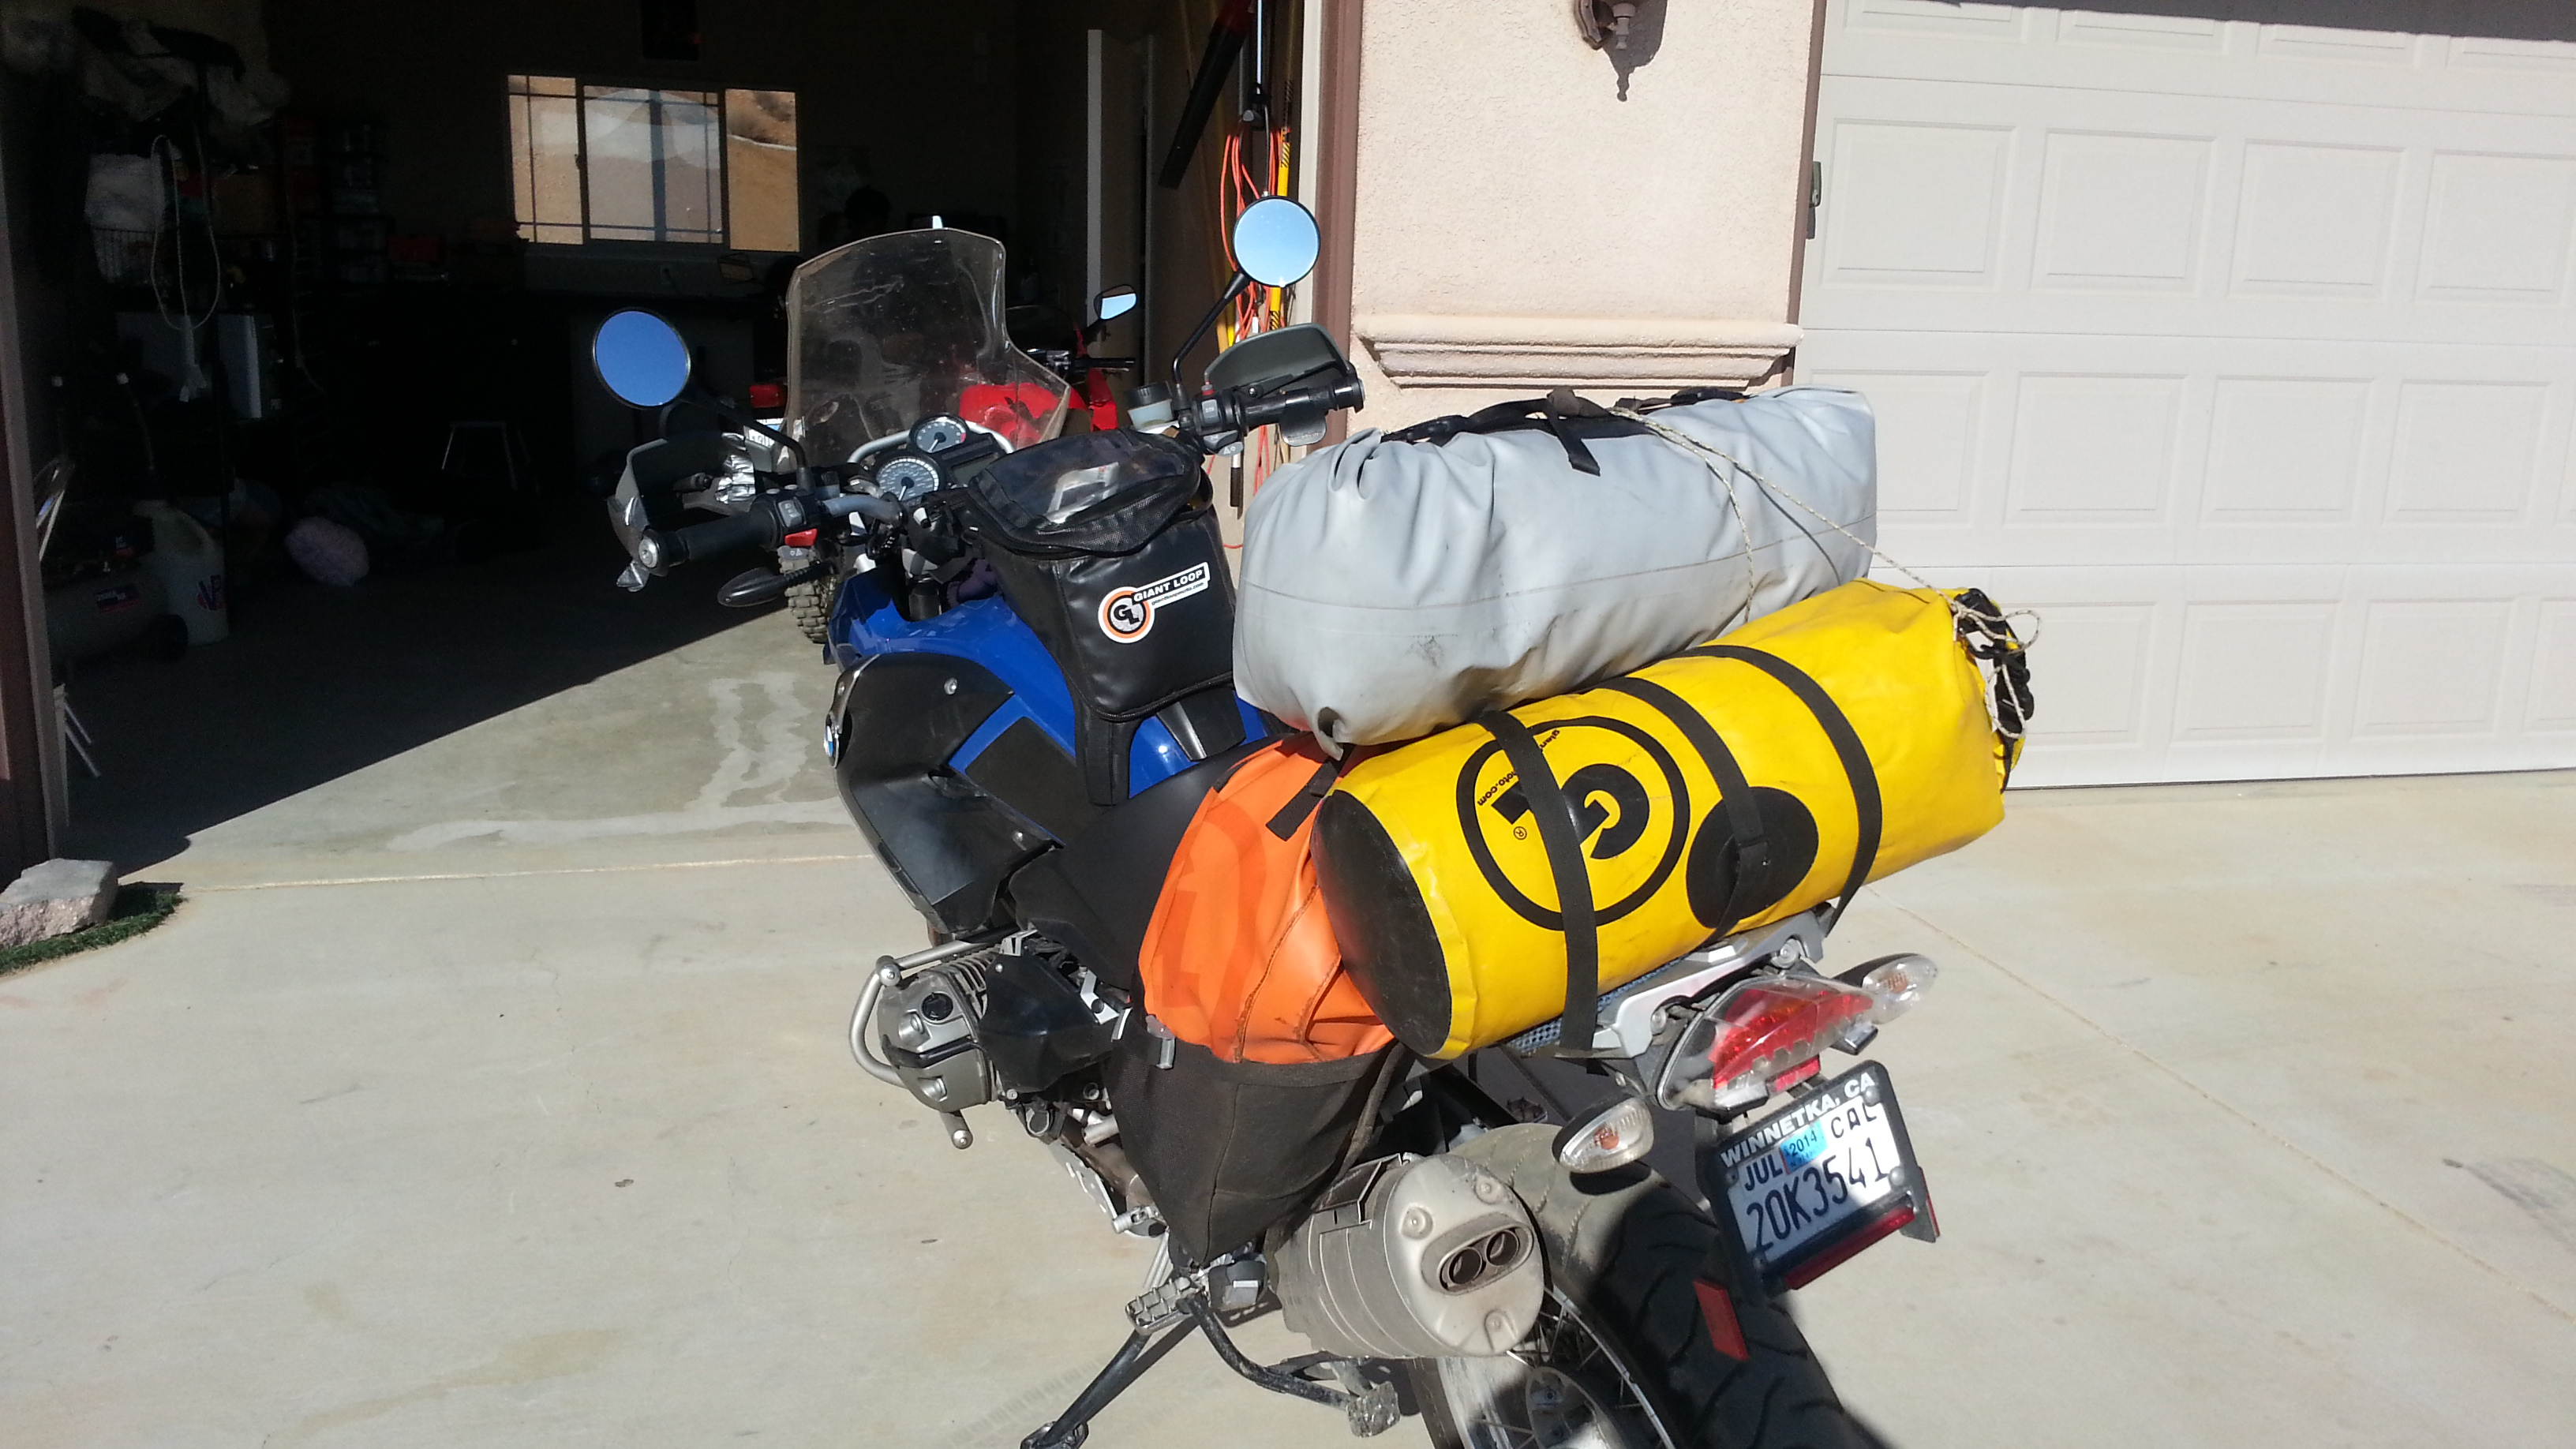 Giant Loop Rider 2 500 Miles On Bmw R1200gs Quot Dry As A